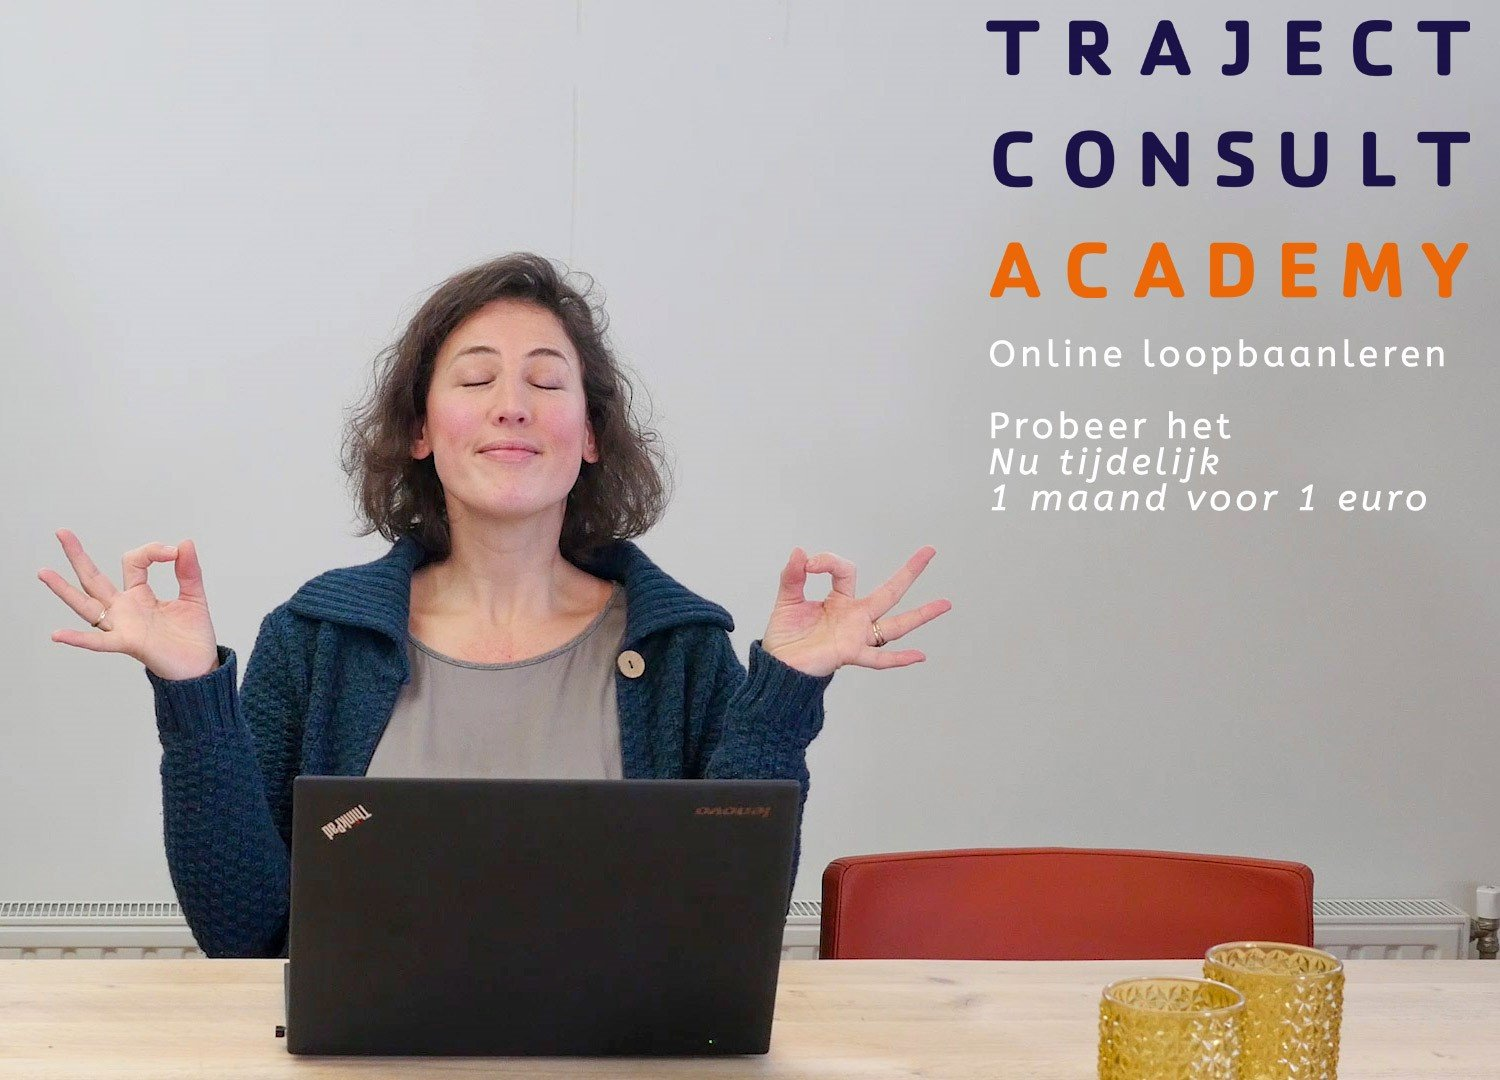 Traject Consult Academy